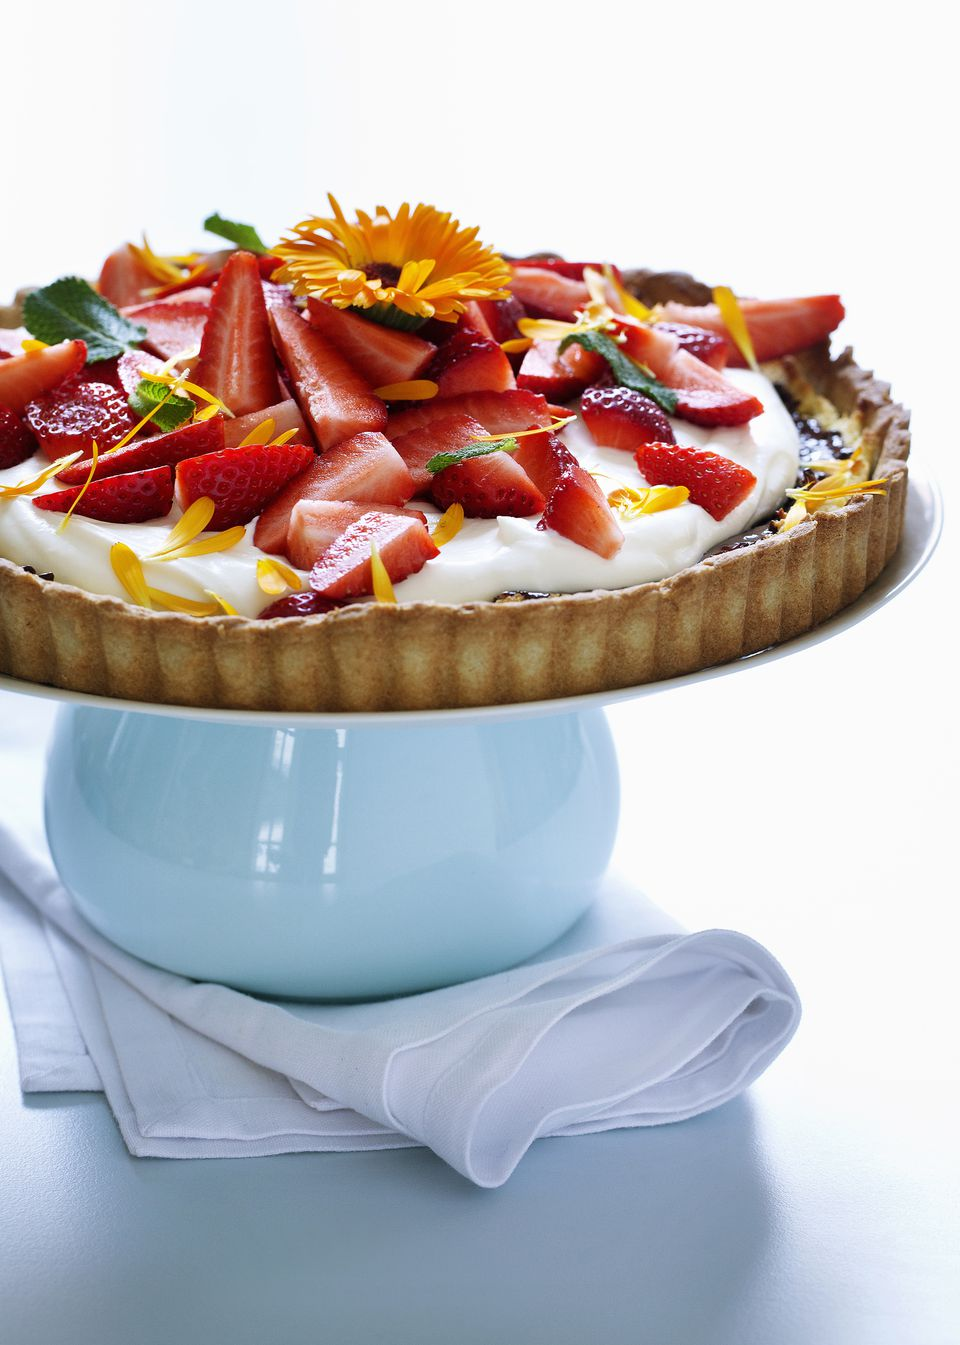 Macerated strawberries tart